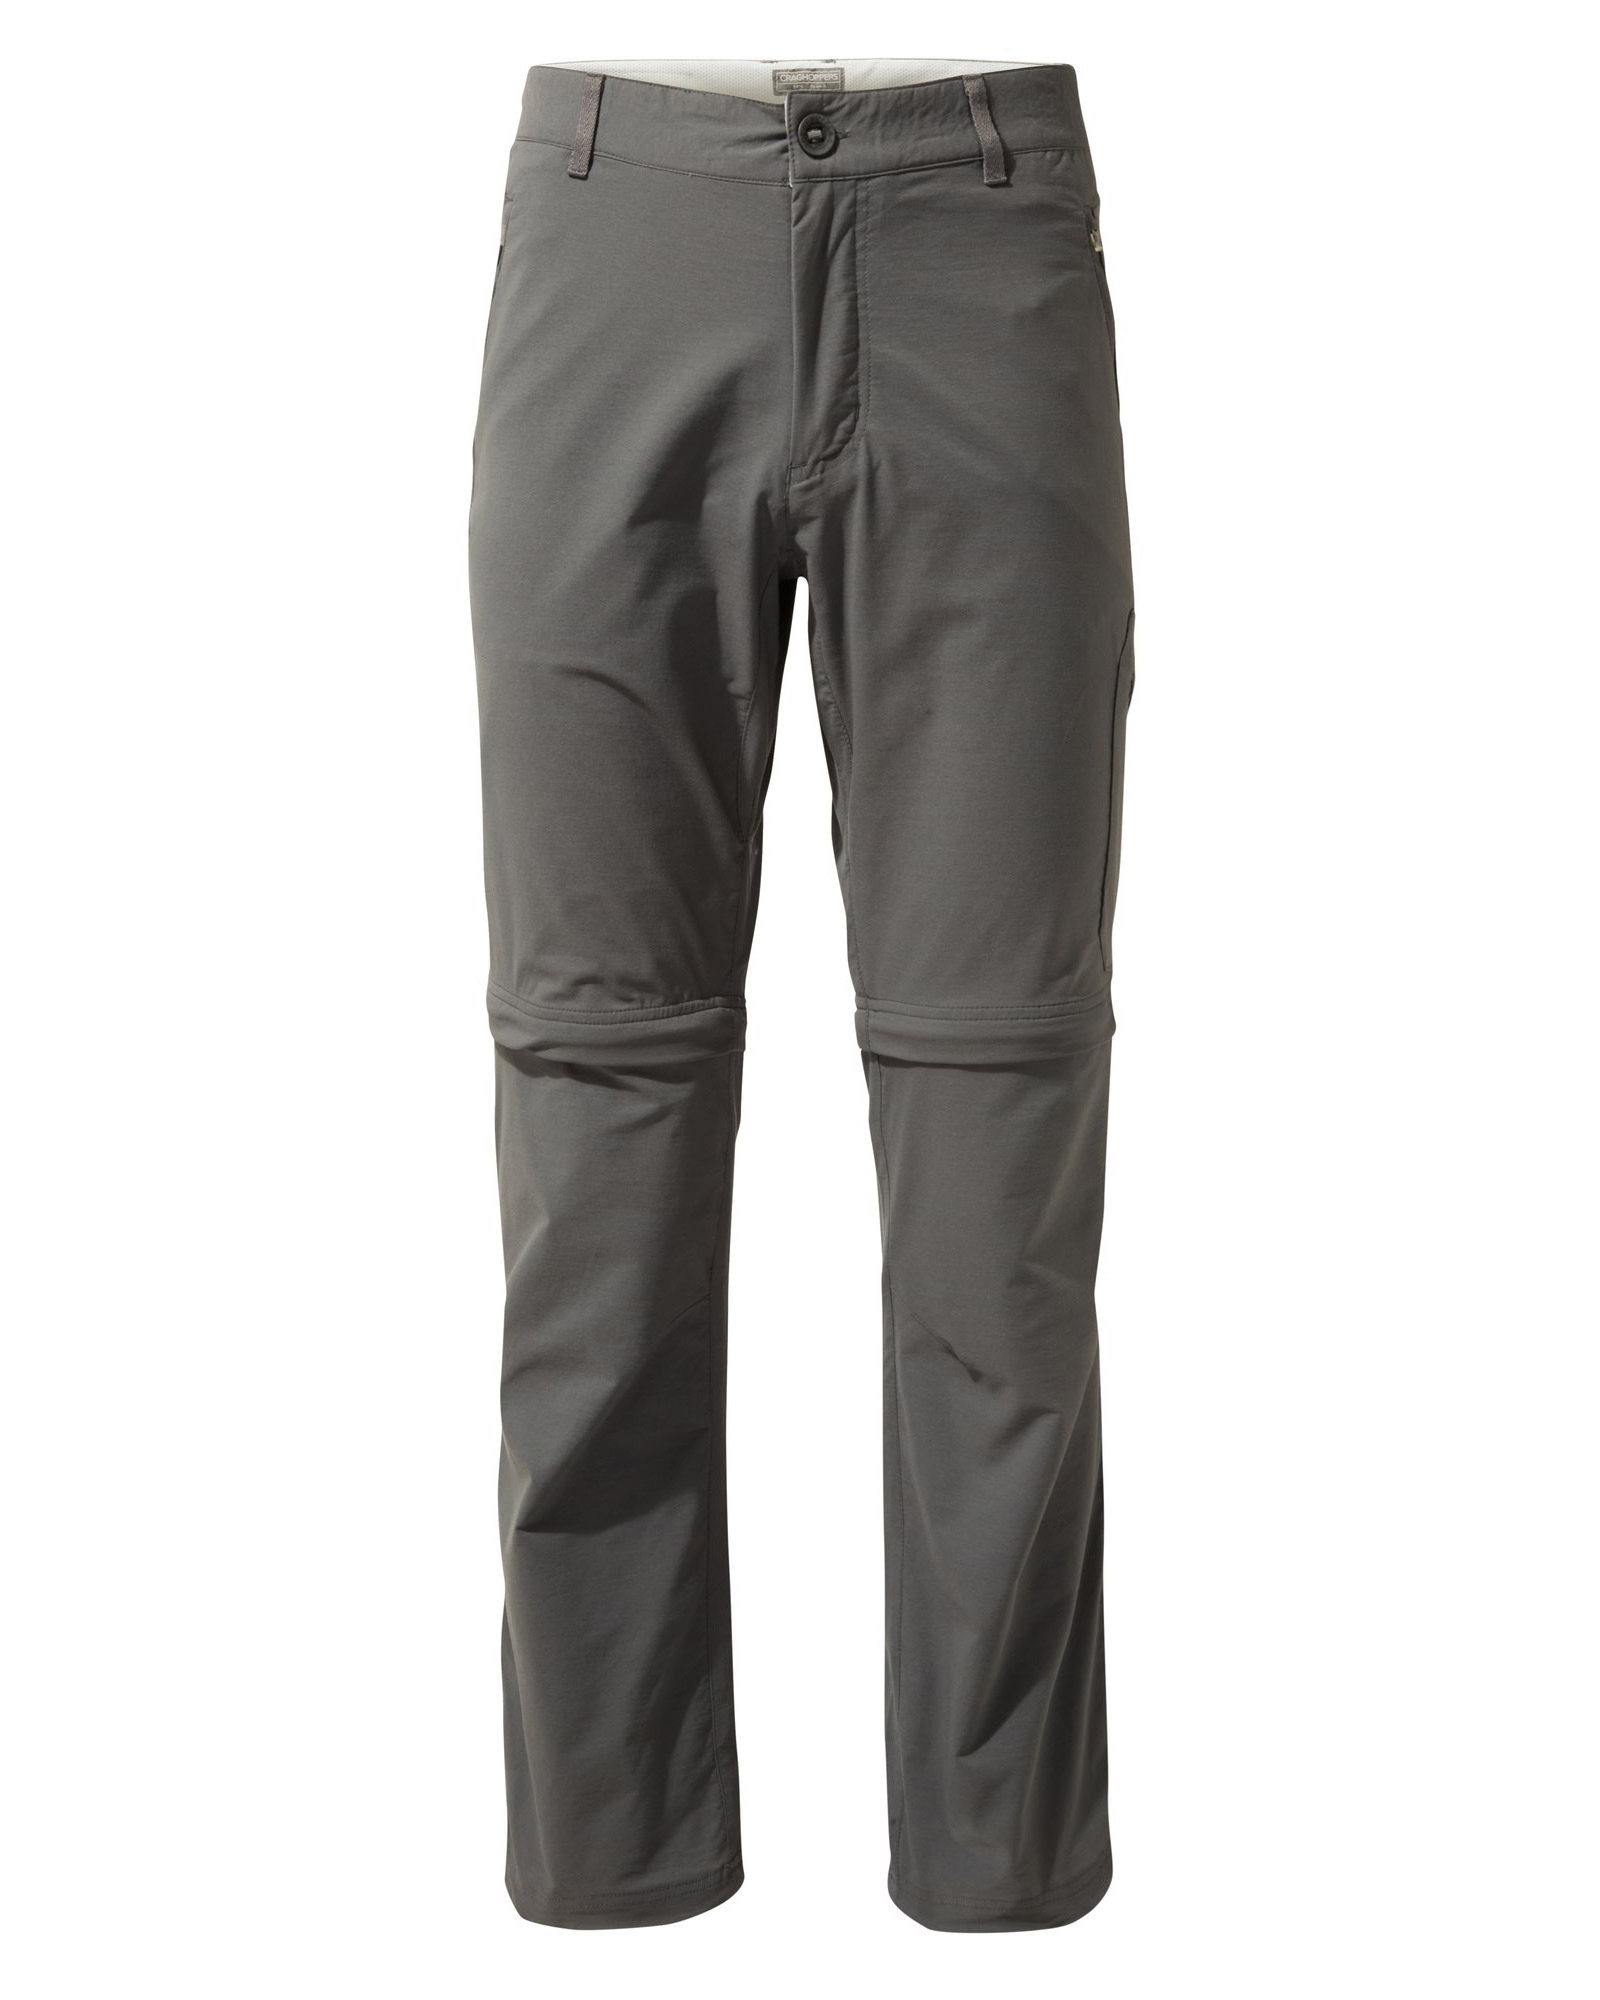 Craghoppers Men's NosiLife Pro Stretch Convertible Pants 0